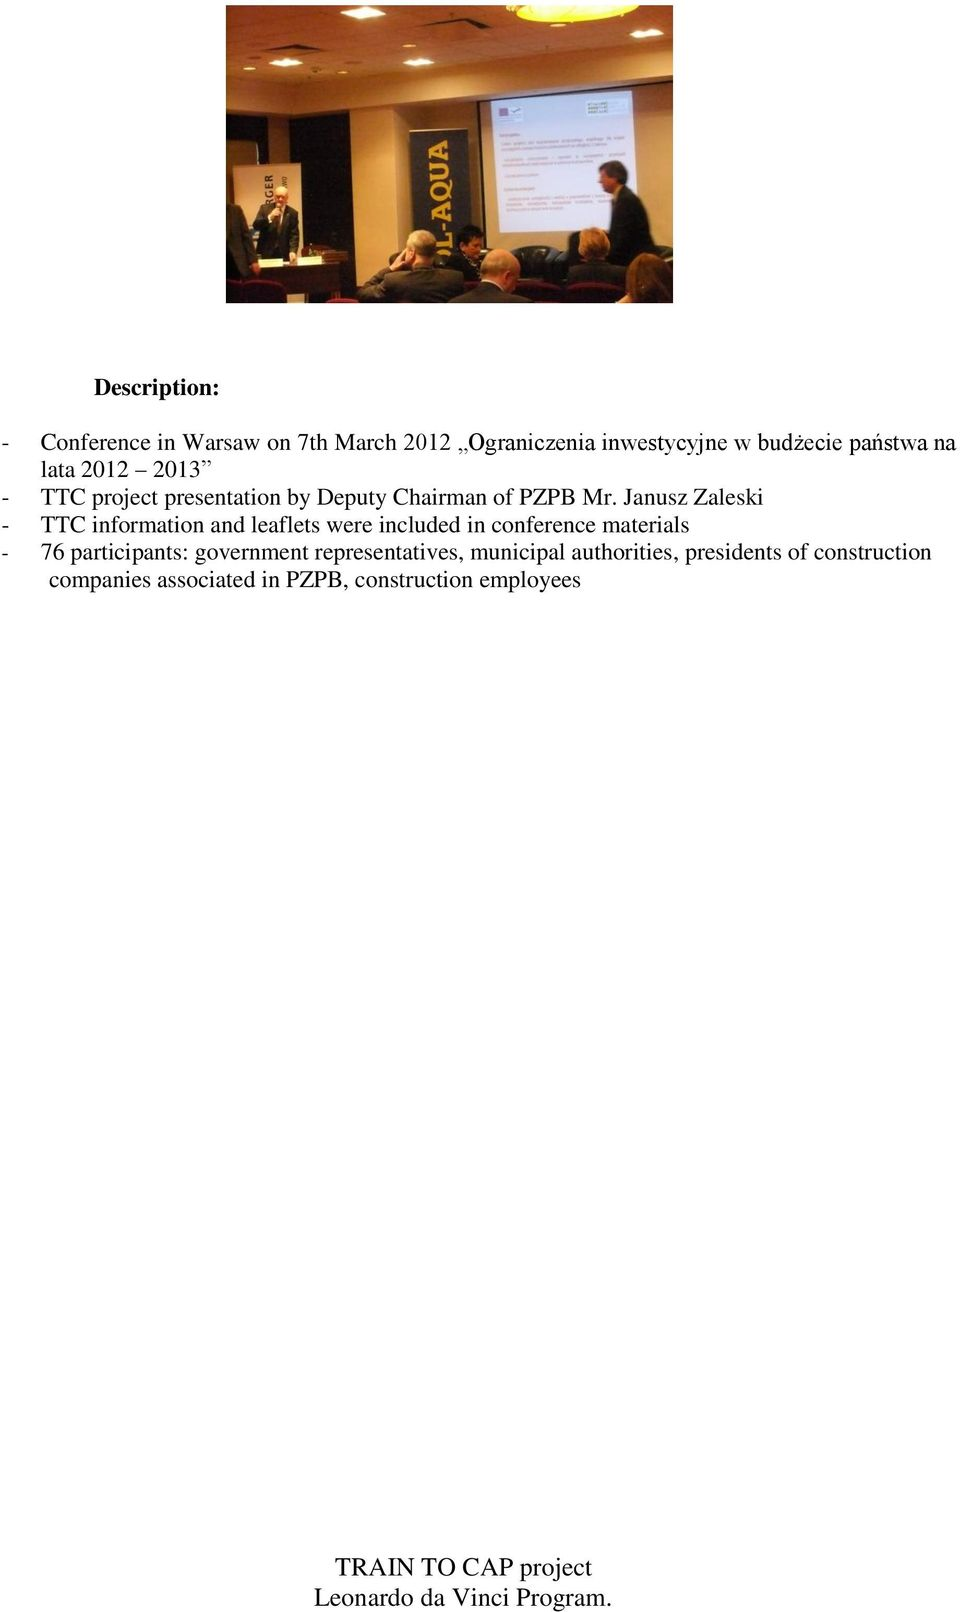 Janusz Zaleski - TTC information and leaflets were included in conference materials - 76